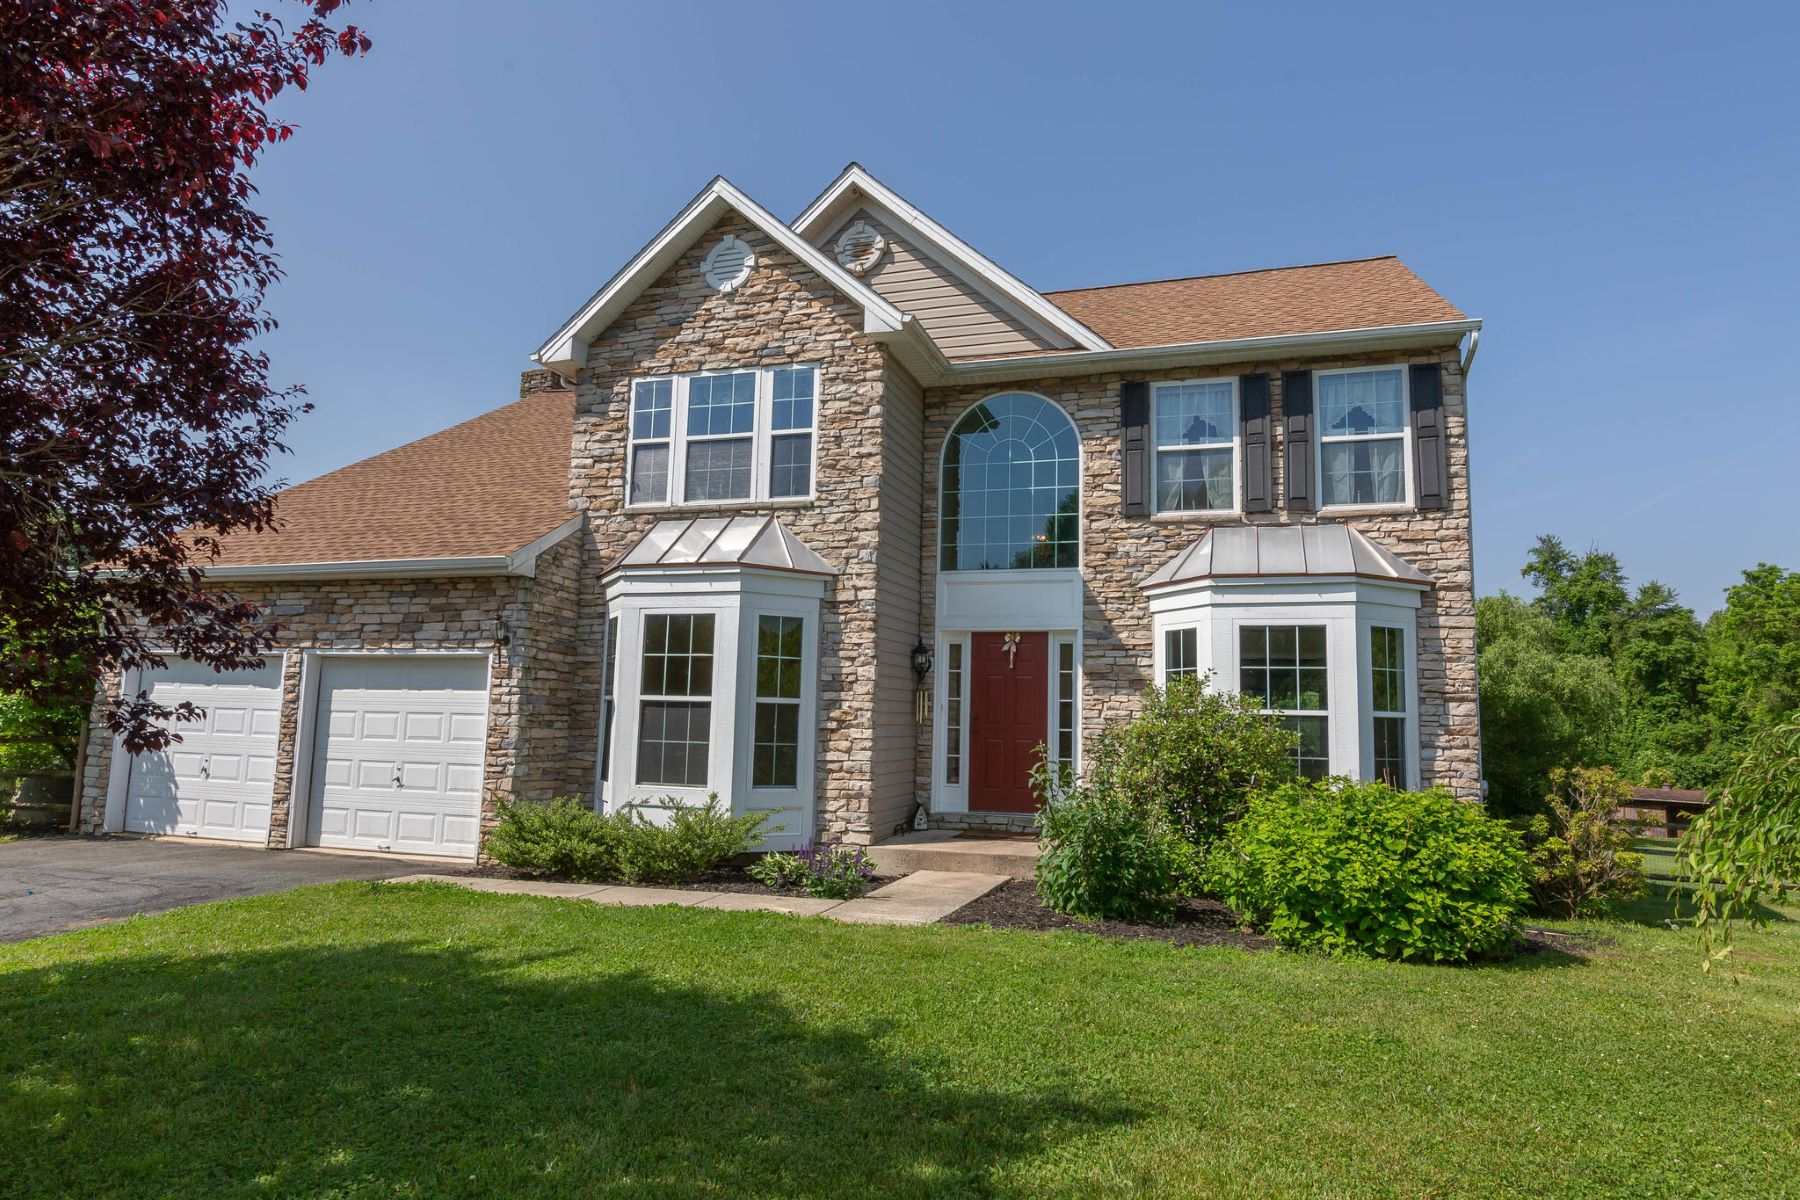 Single Family Homes for Active at 185 Long Dr., Elkton, MD 21921 185 Long Dr. Elkton, Maryland 21921 United States